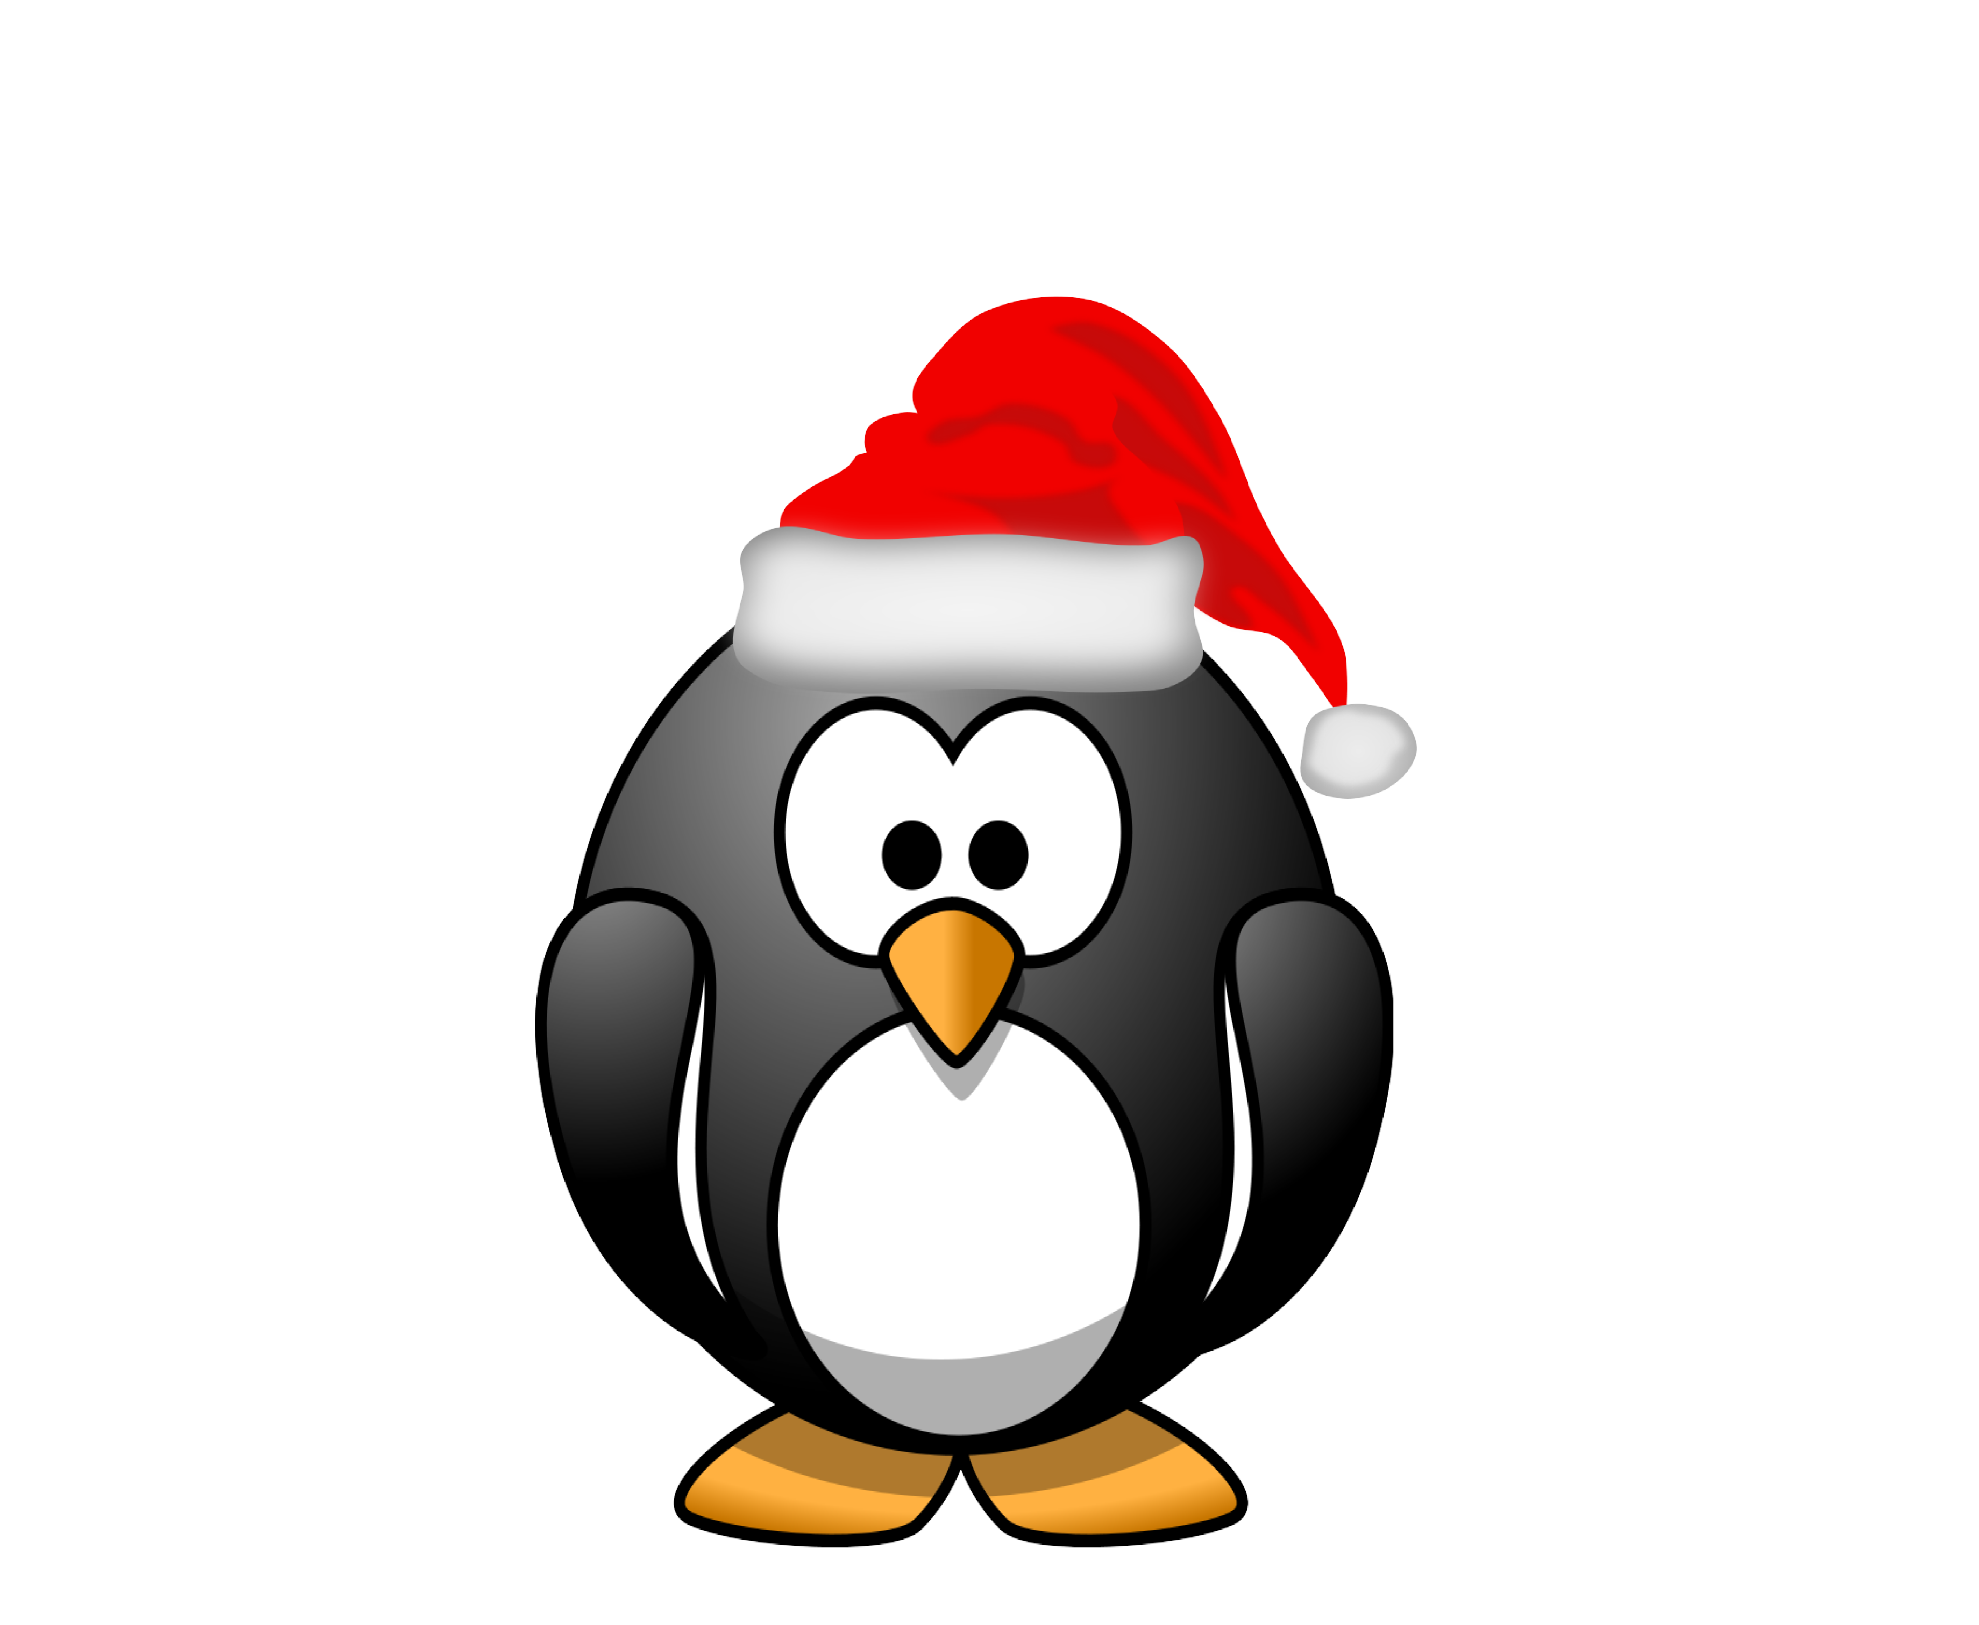 Christmas penguin images clipart png free library Free Christmas Penguin Clipart, Download Free Clip Art, Free Clip ... png free library